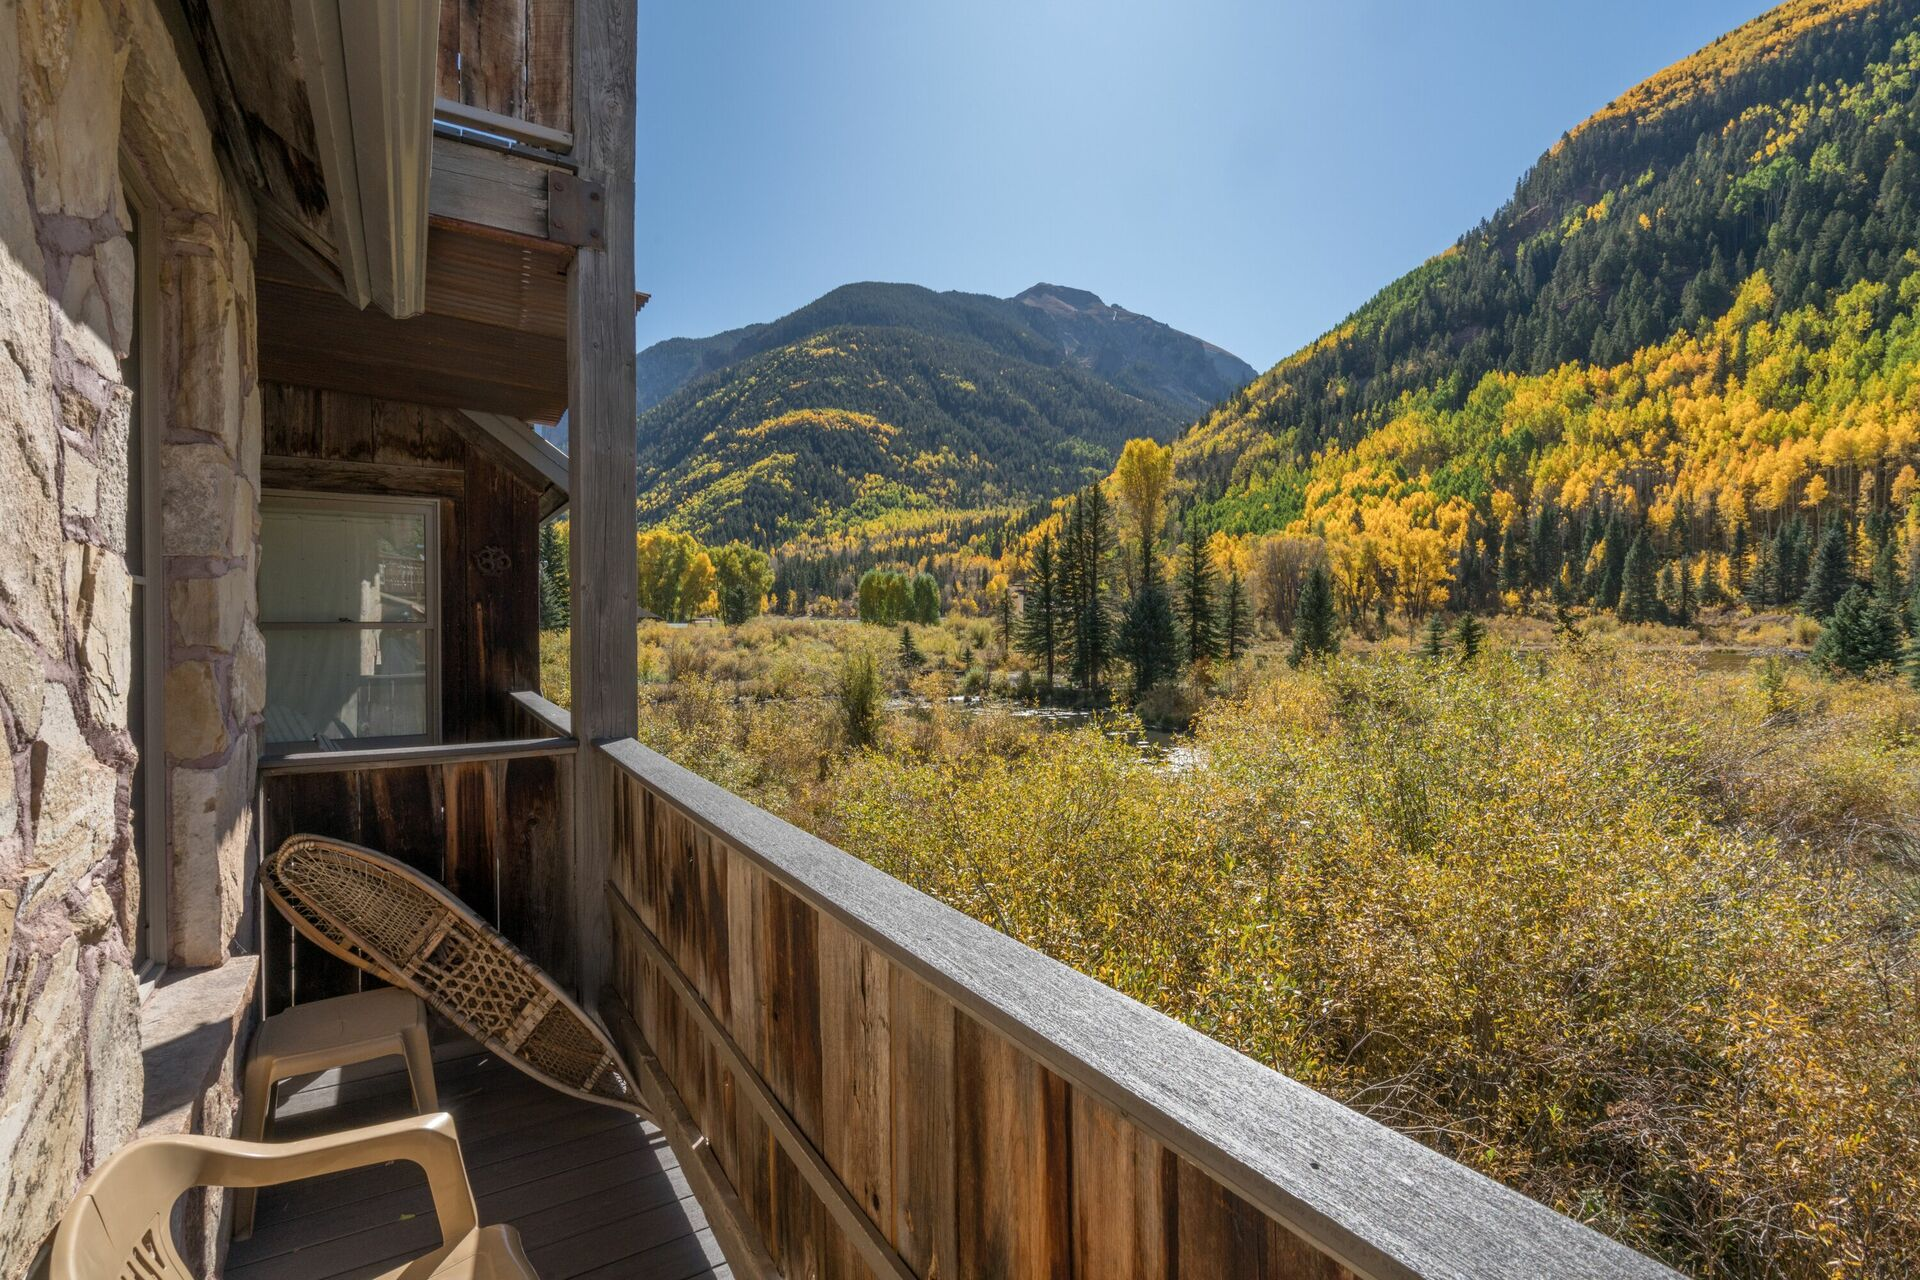 Patio furniture on the balcony of this 3 bedroom condo in Telluride.